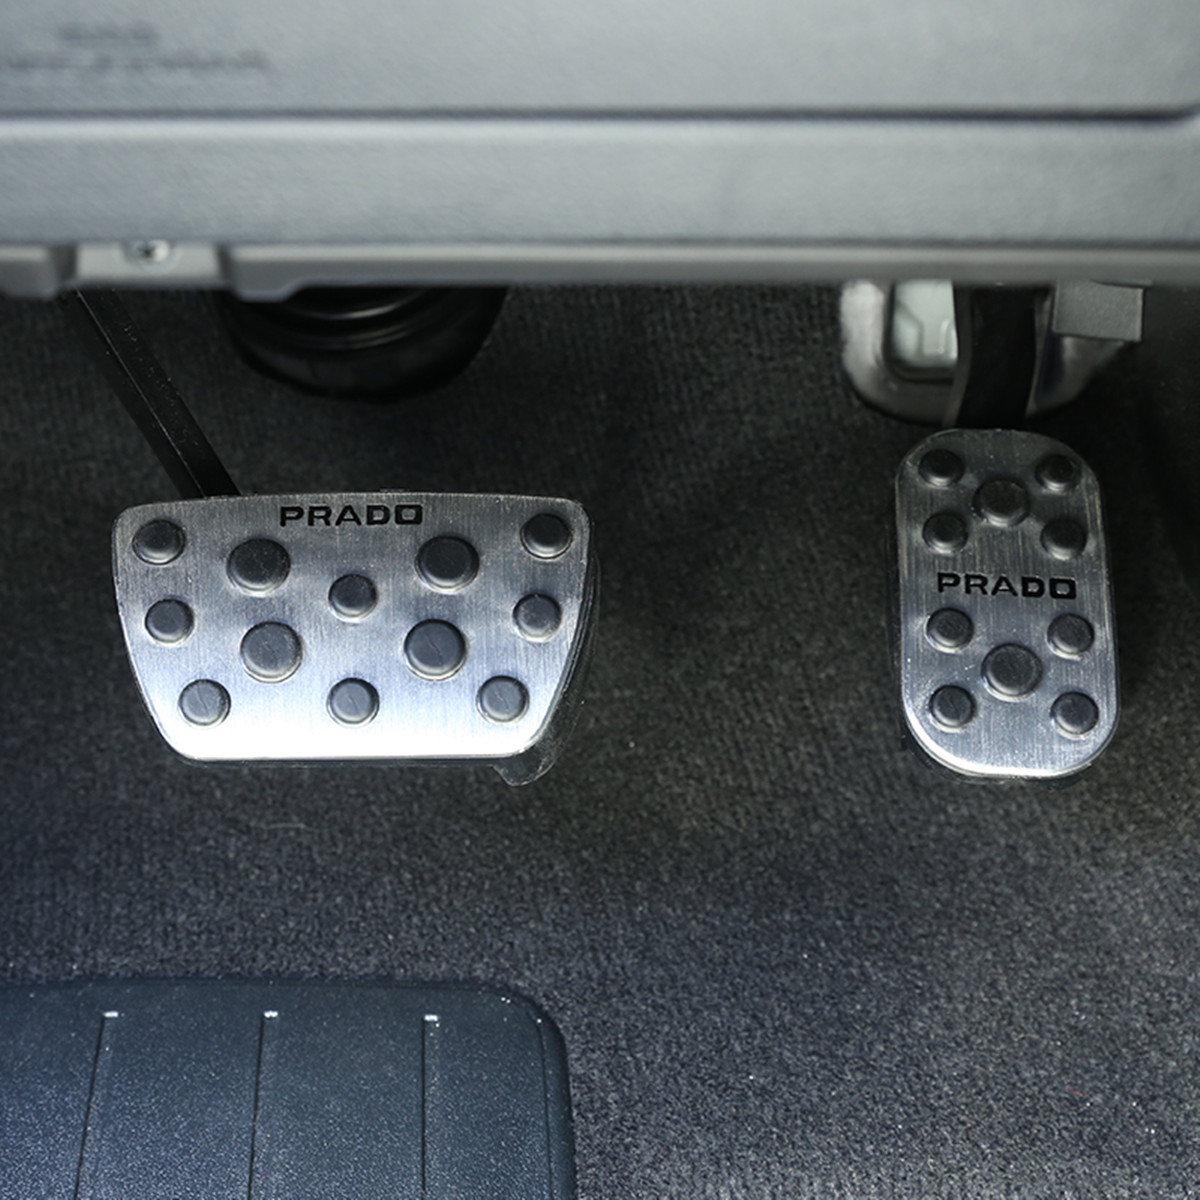 Image 5 - Car Accelerator and Brake Pedals for Toyota Land Cruiser Prado 150 2010 2012 2013 2014 2015 2016 2017 2018 AT Accessories-in Chromium Styling from Automobiles & Motorcycles